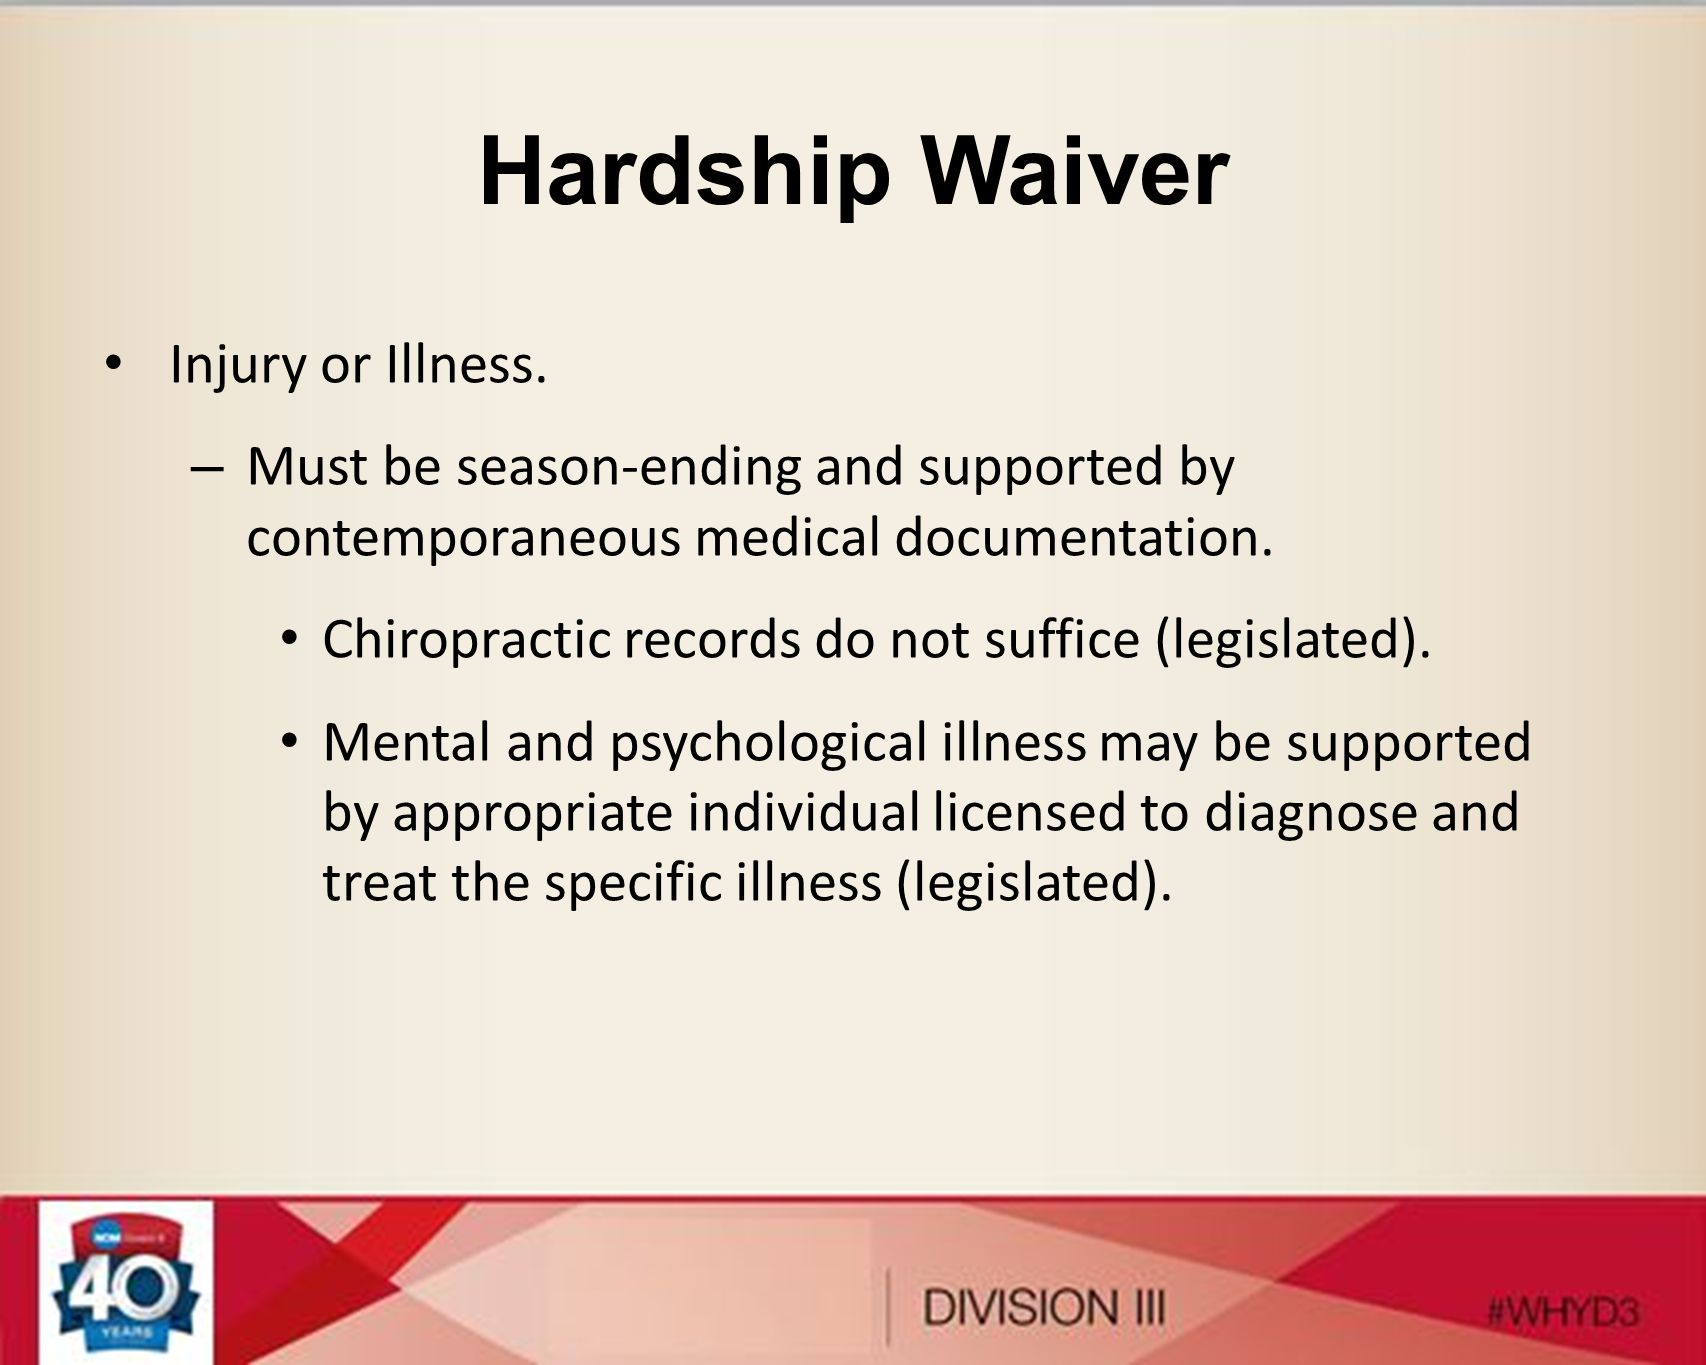 Hardship Waiver Injury or Illness. – Must be season-ending and supported by contemporaneous medical documentation. Chiropractic records do not suffice